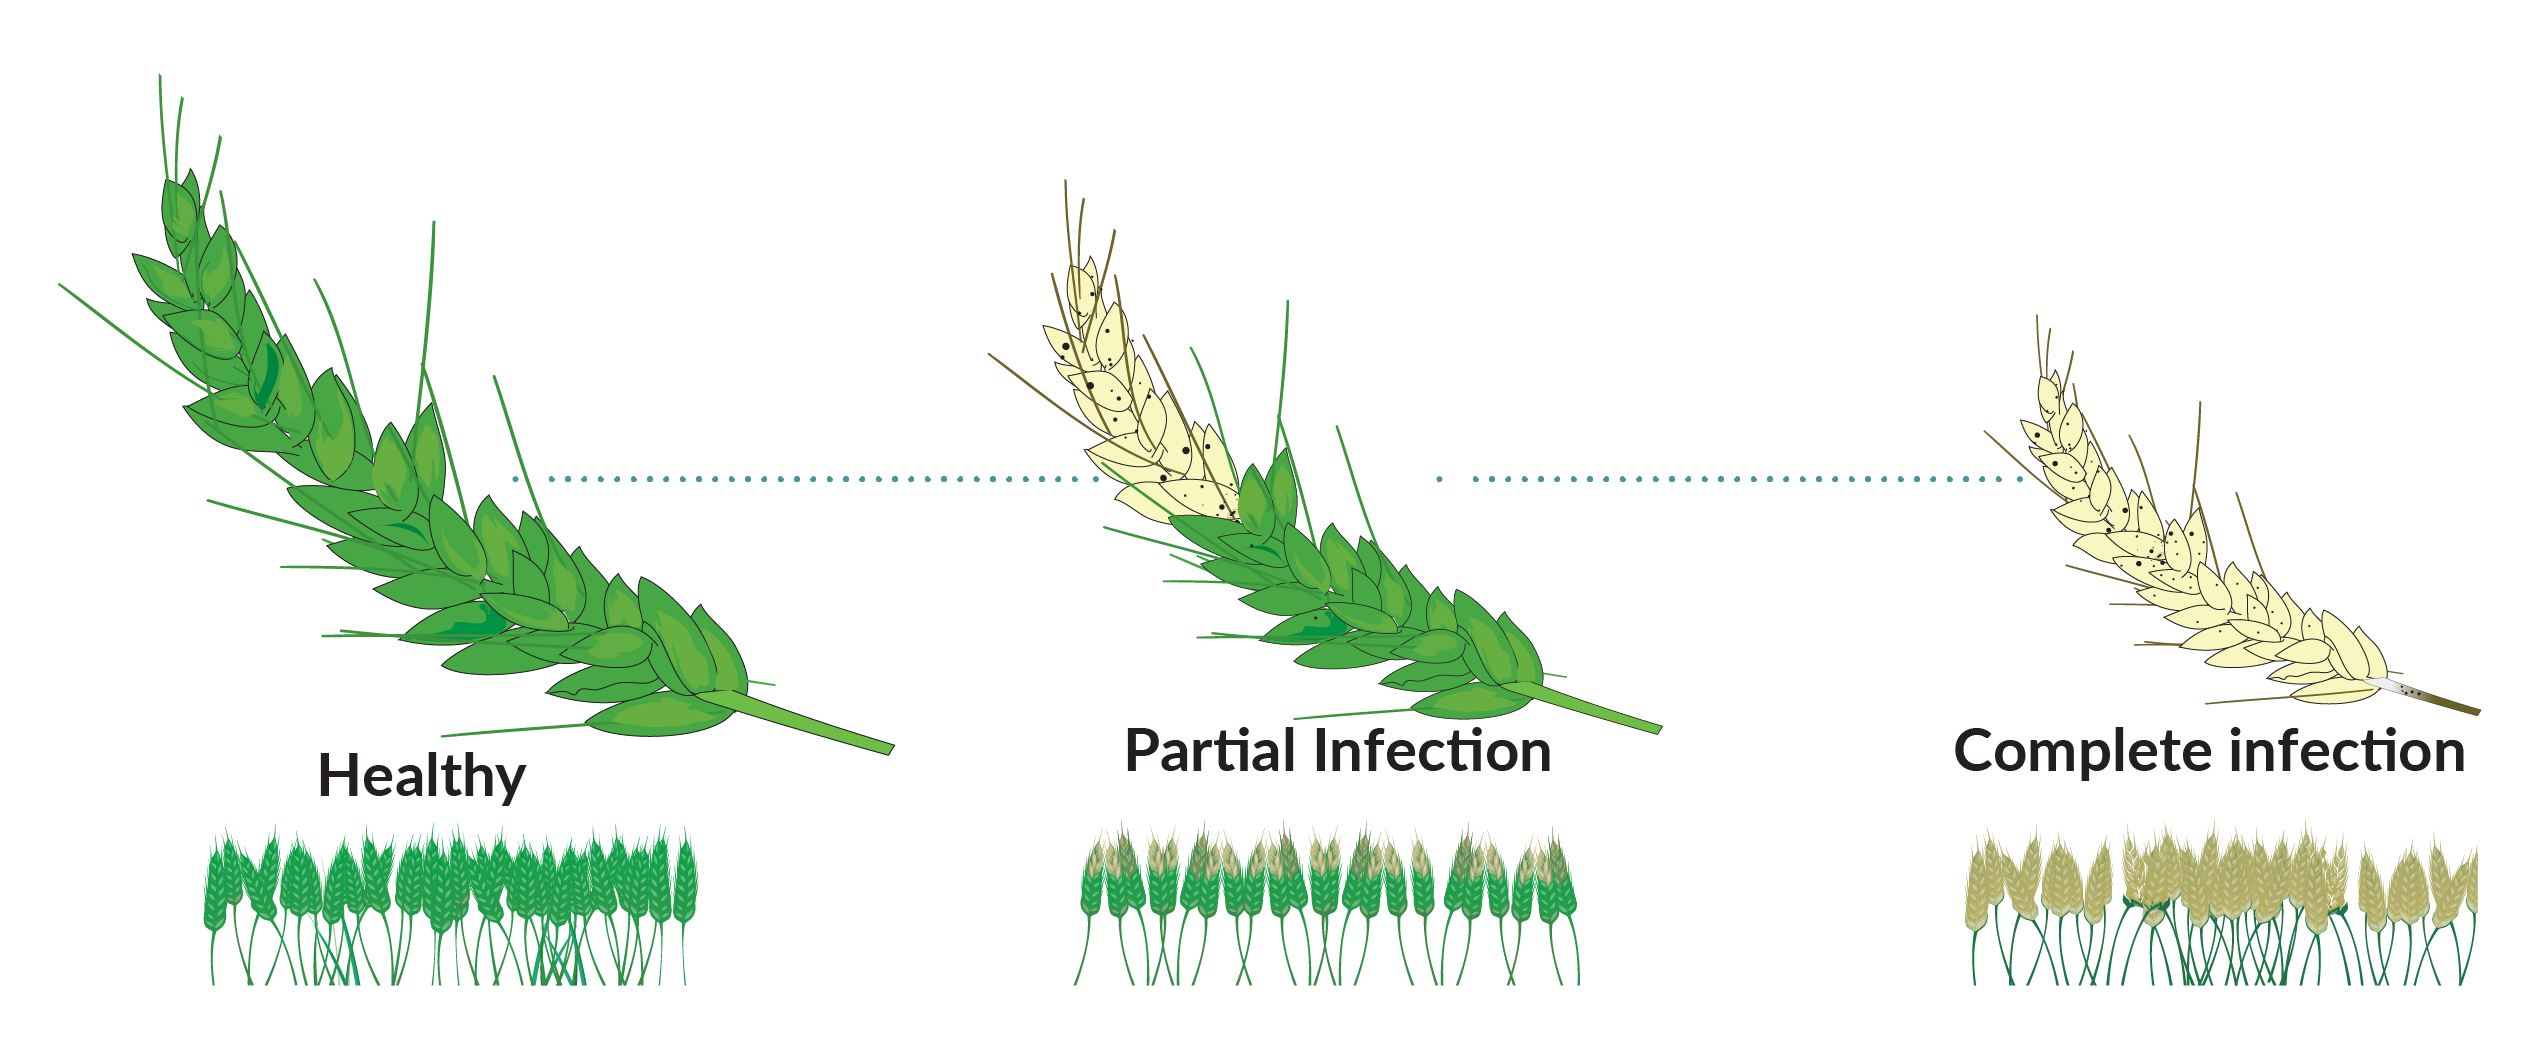 The pathogen can infect all aerial wheat plant parts, but maximum damage is done when it infects the wheat ear. It can shrivel and deform the grain in less than a week from first symptoms, leaving farmers no time to act.